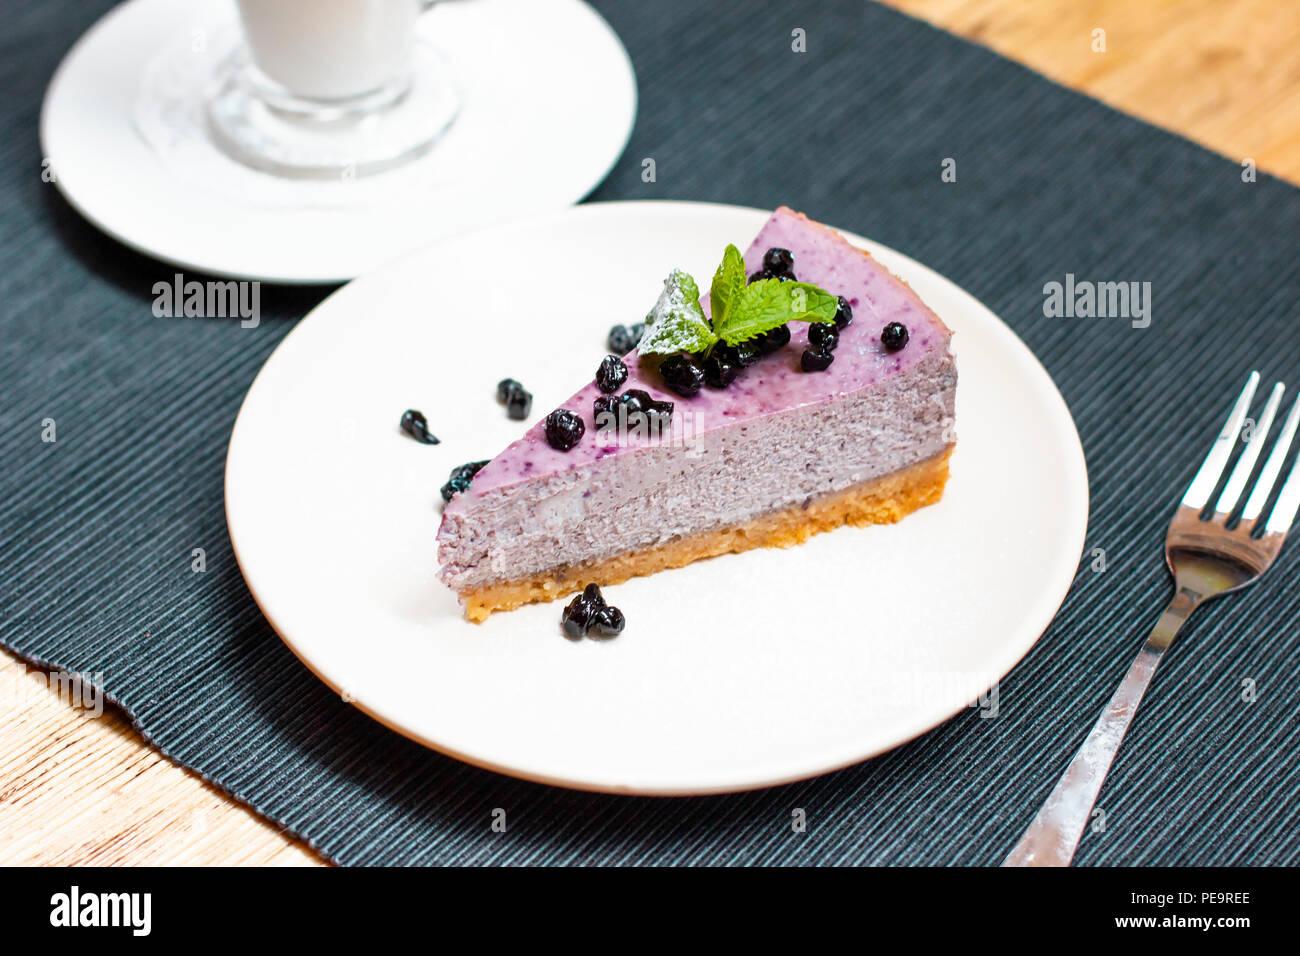 Blueberry cheesecake with berries and mint with coffee latte on the table - Stock Image